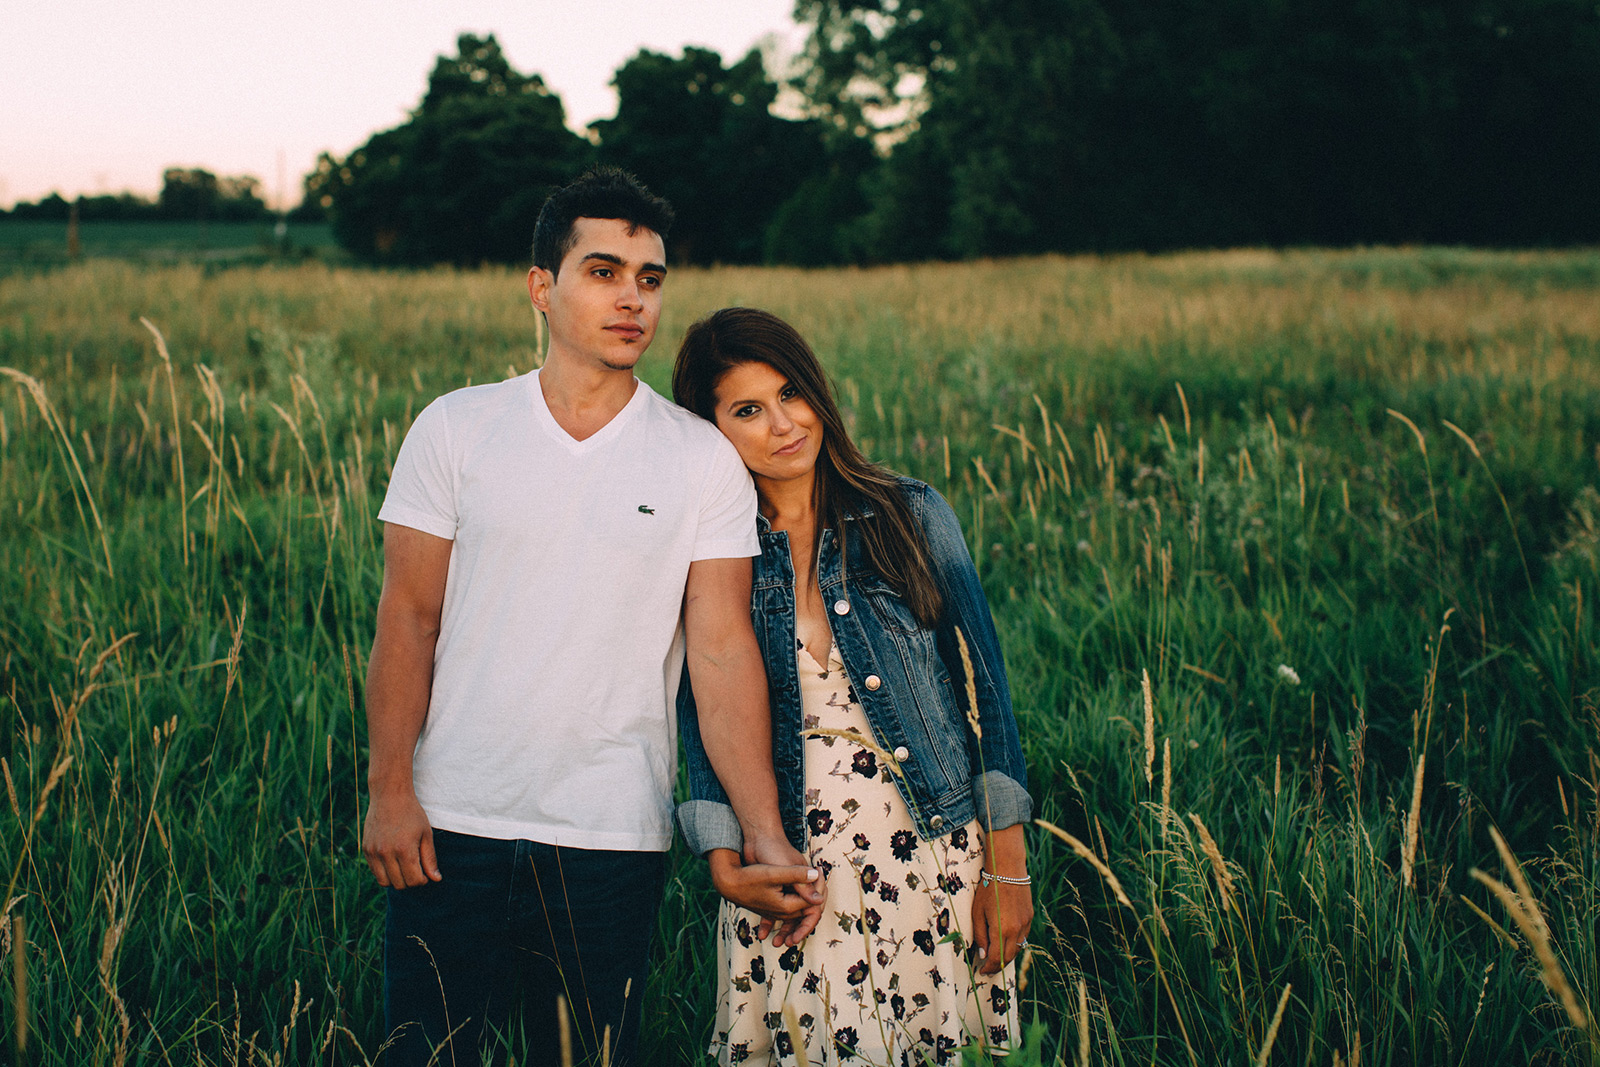 Rural-Ontario-modern-lifestyle-engagement-session-Sam-Wong-Visual-Cravings-AnJ_22